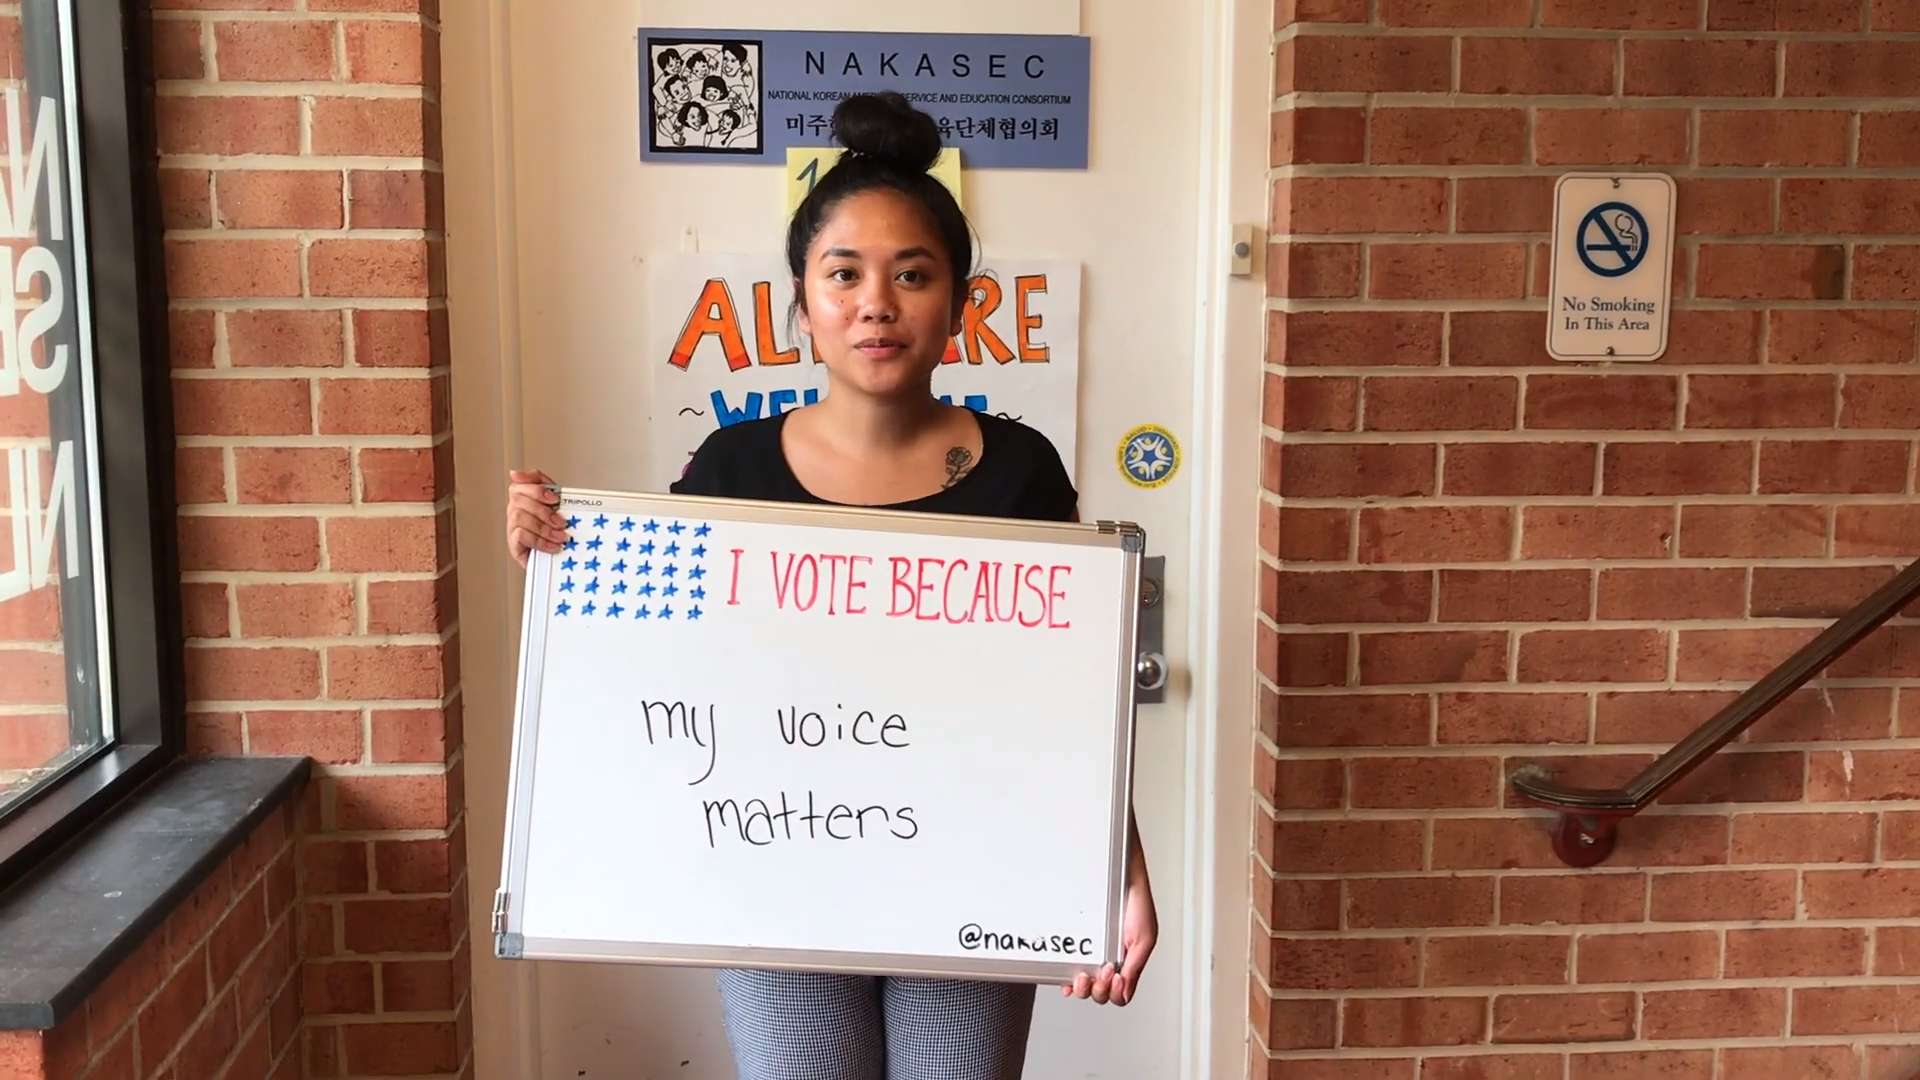 I Vote Because my voice matters